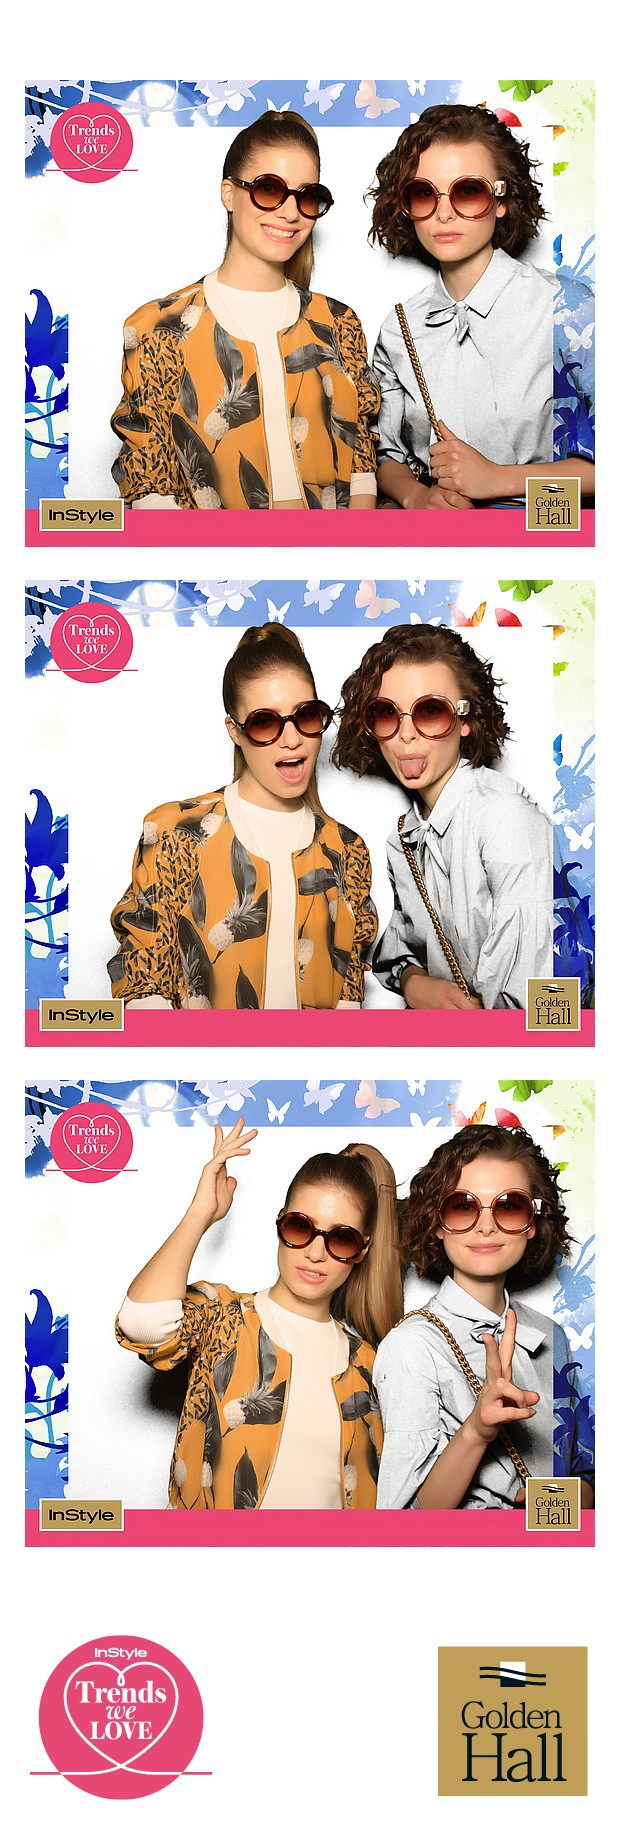 Mini_Photobooth_013